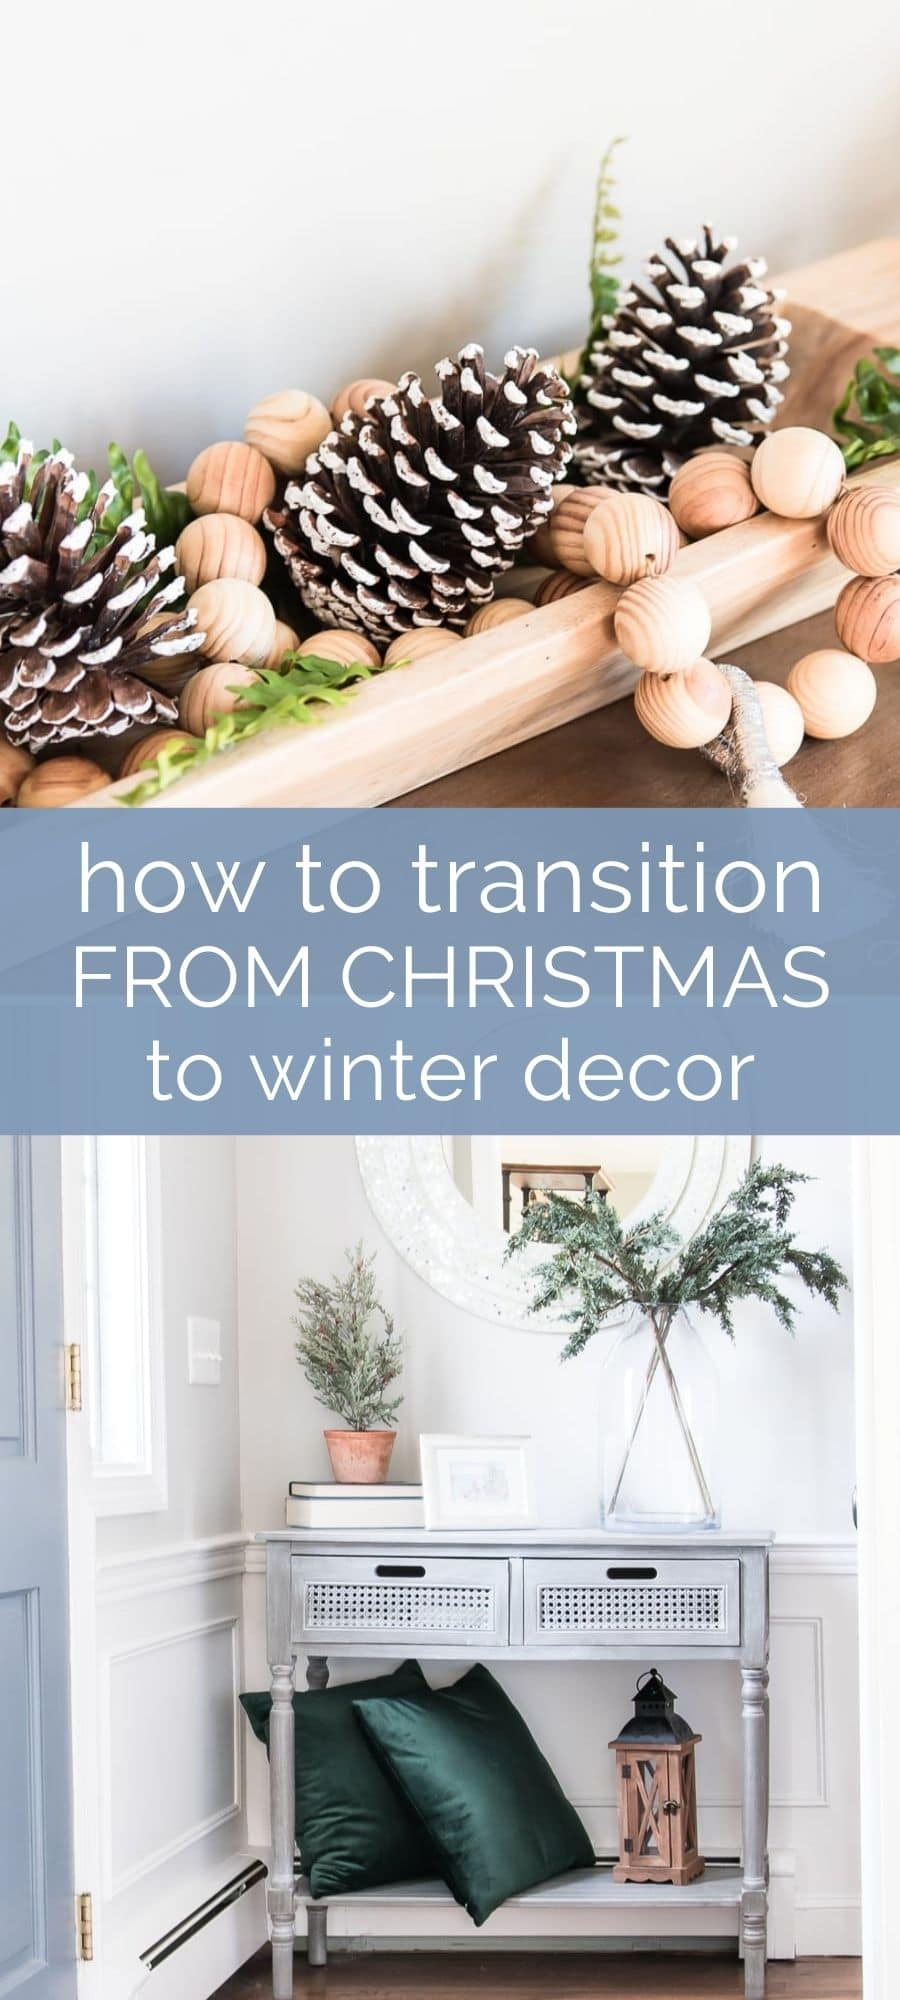 how to easily transition from Christmas to winter decor